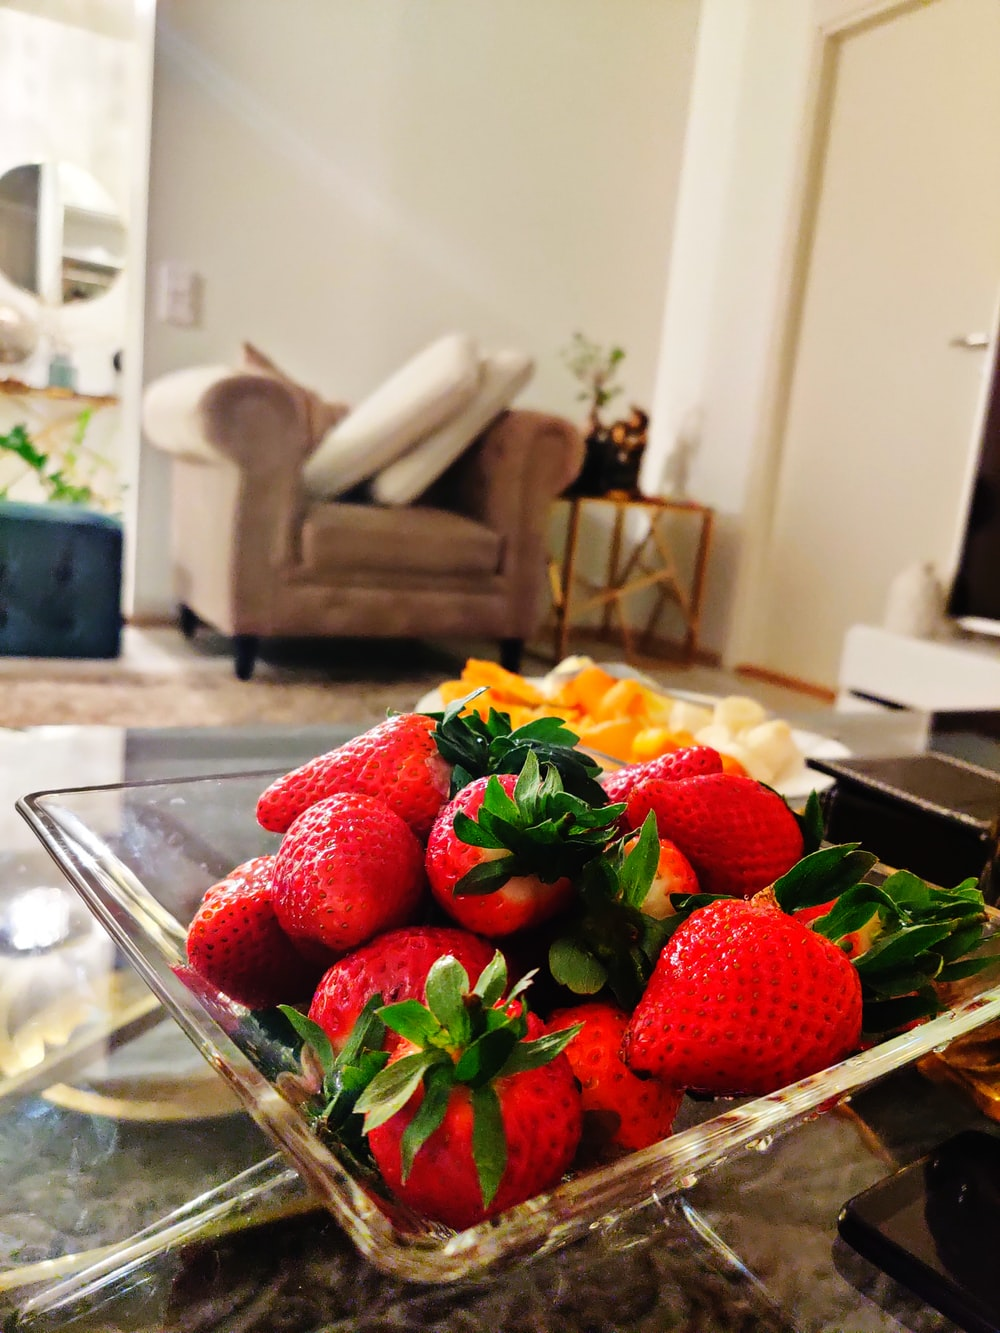 strawberries on clear glass bowl